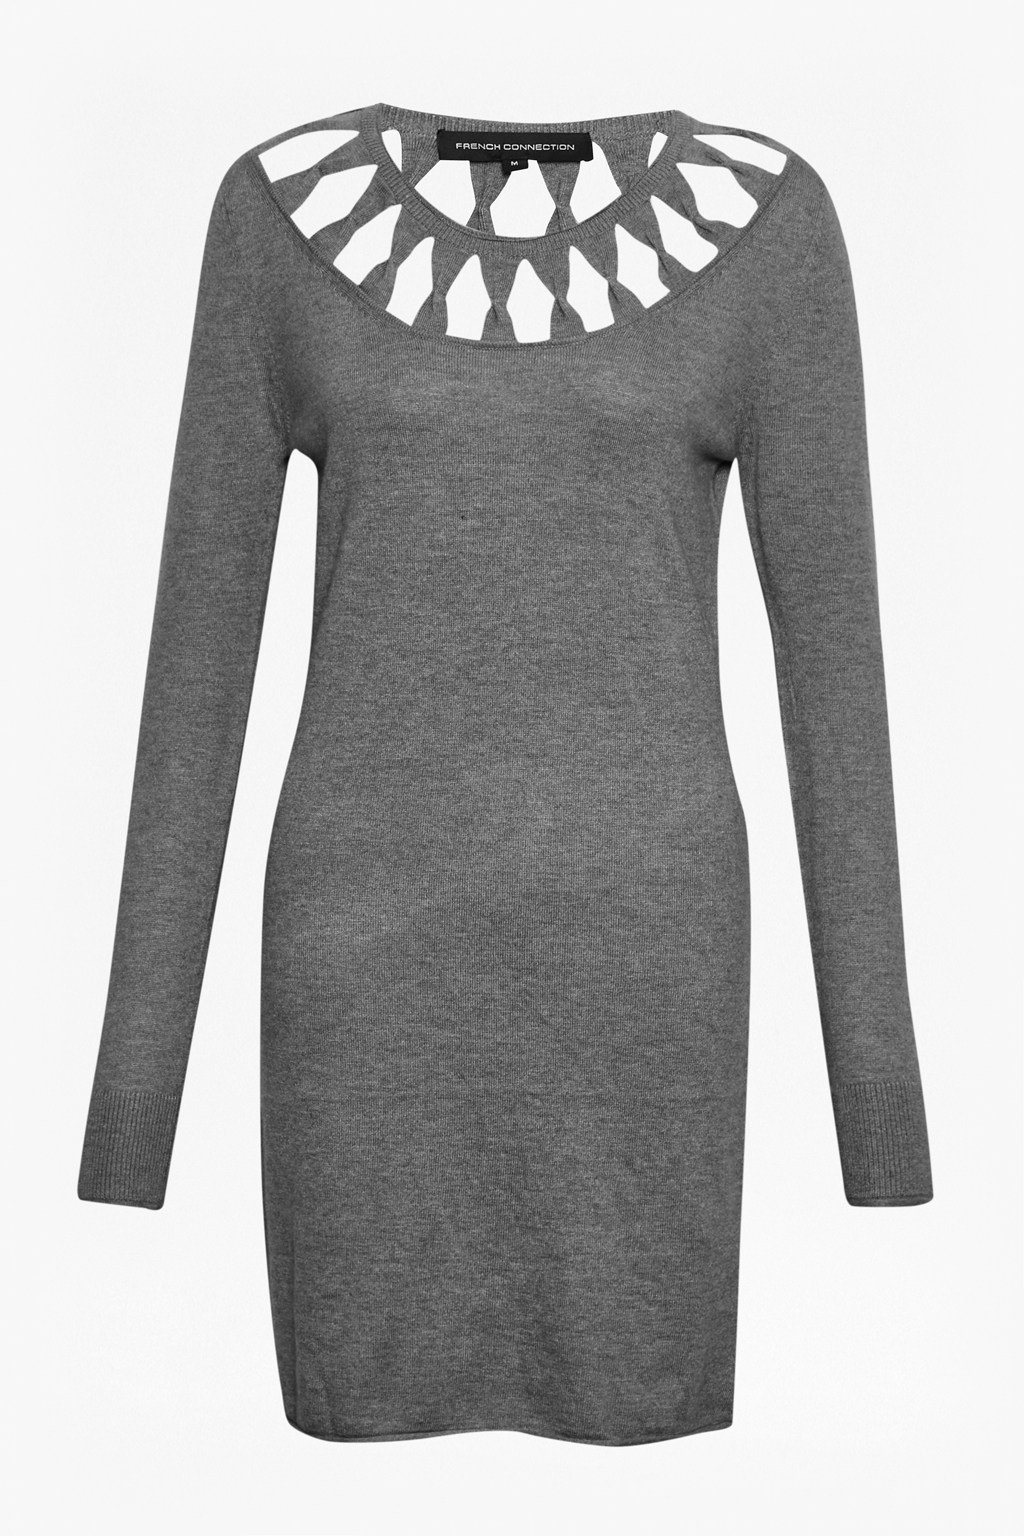 1be6a4ac0e6 Emily Knit Jumper Dress. loading images.